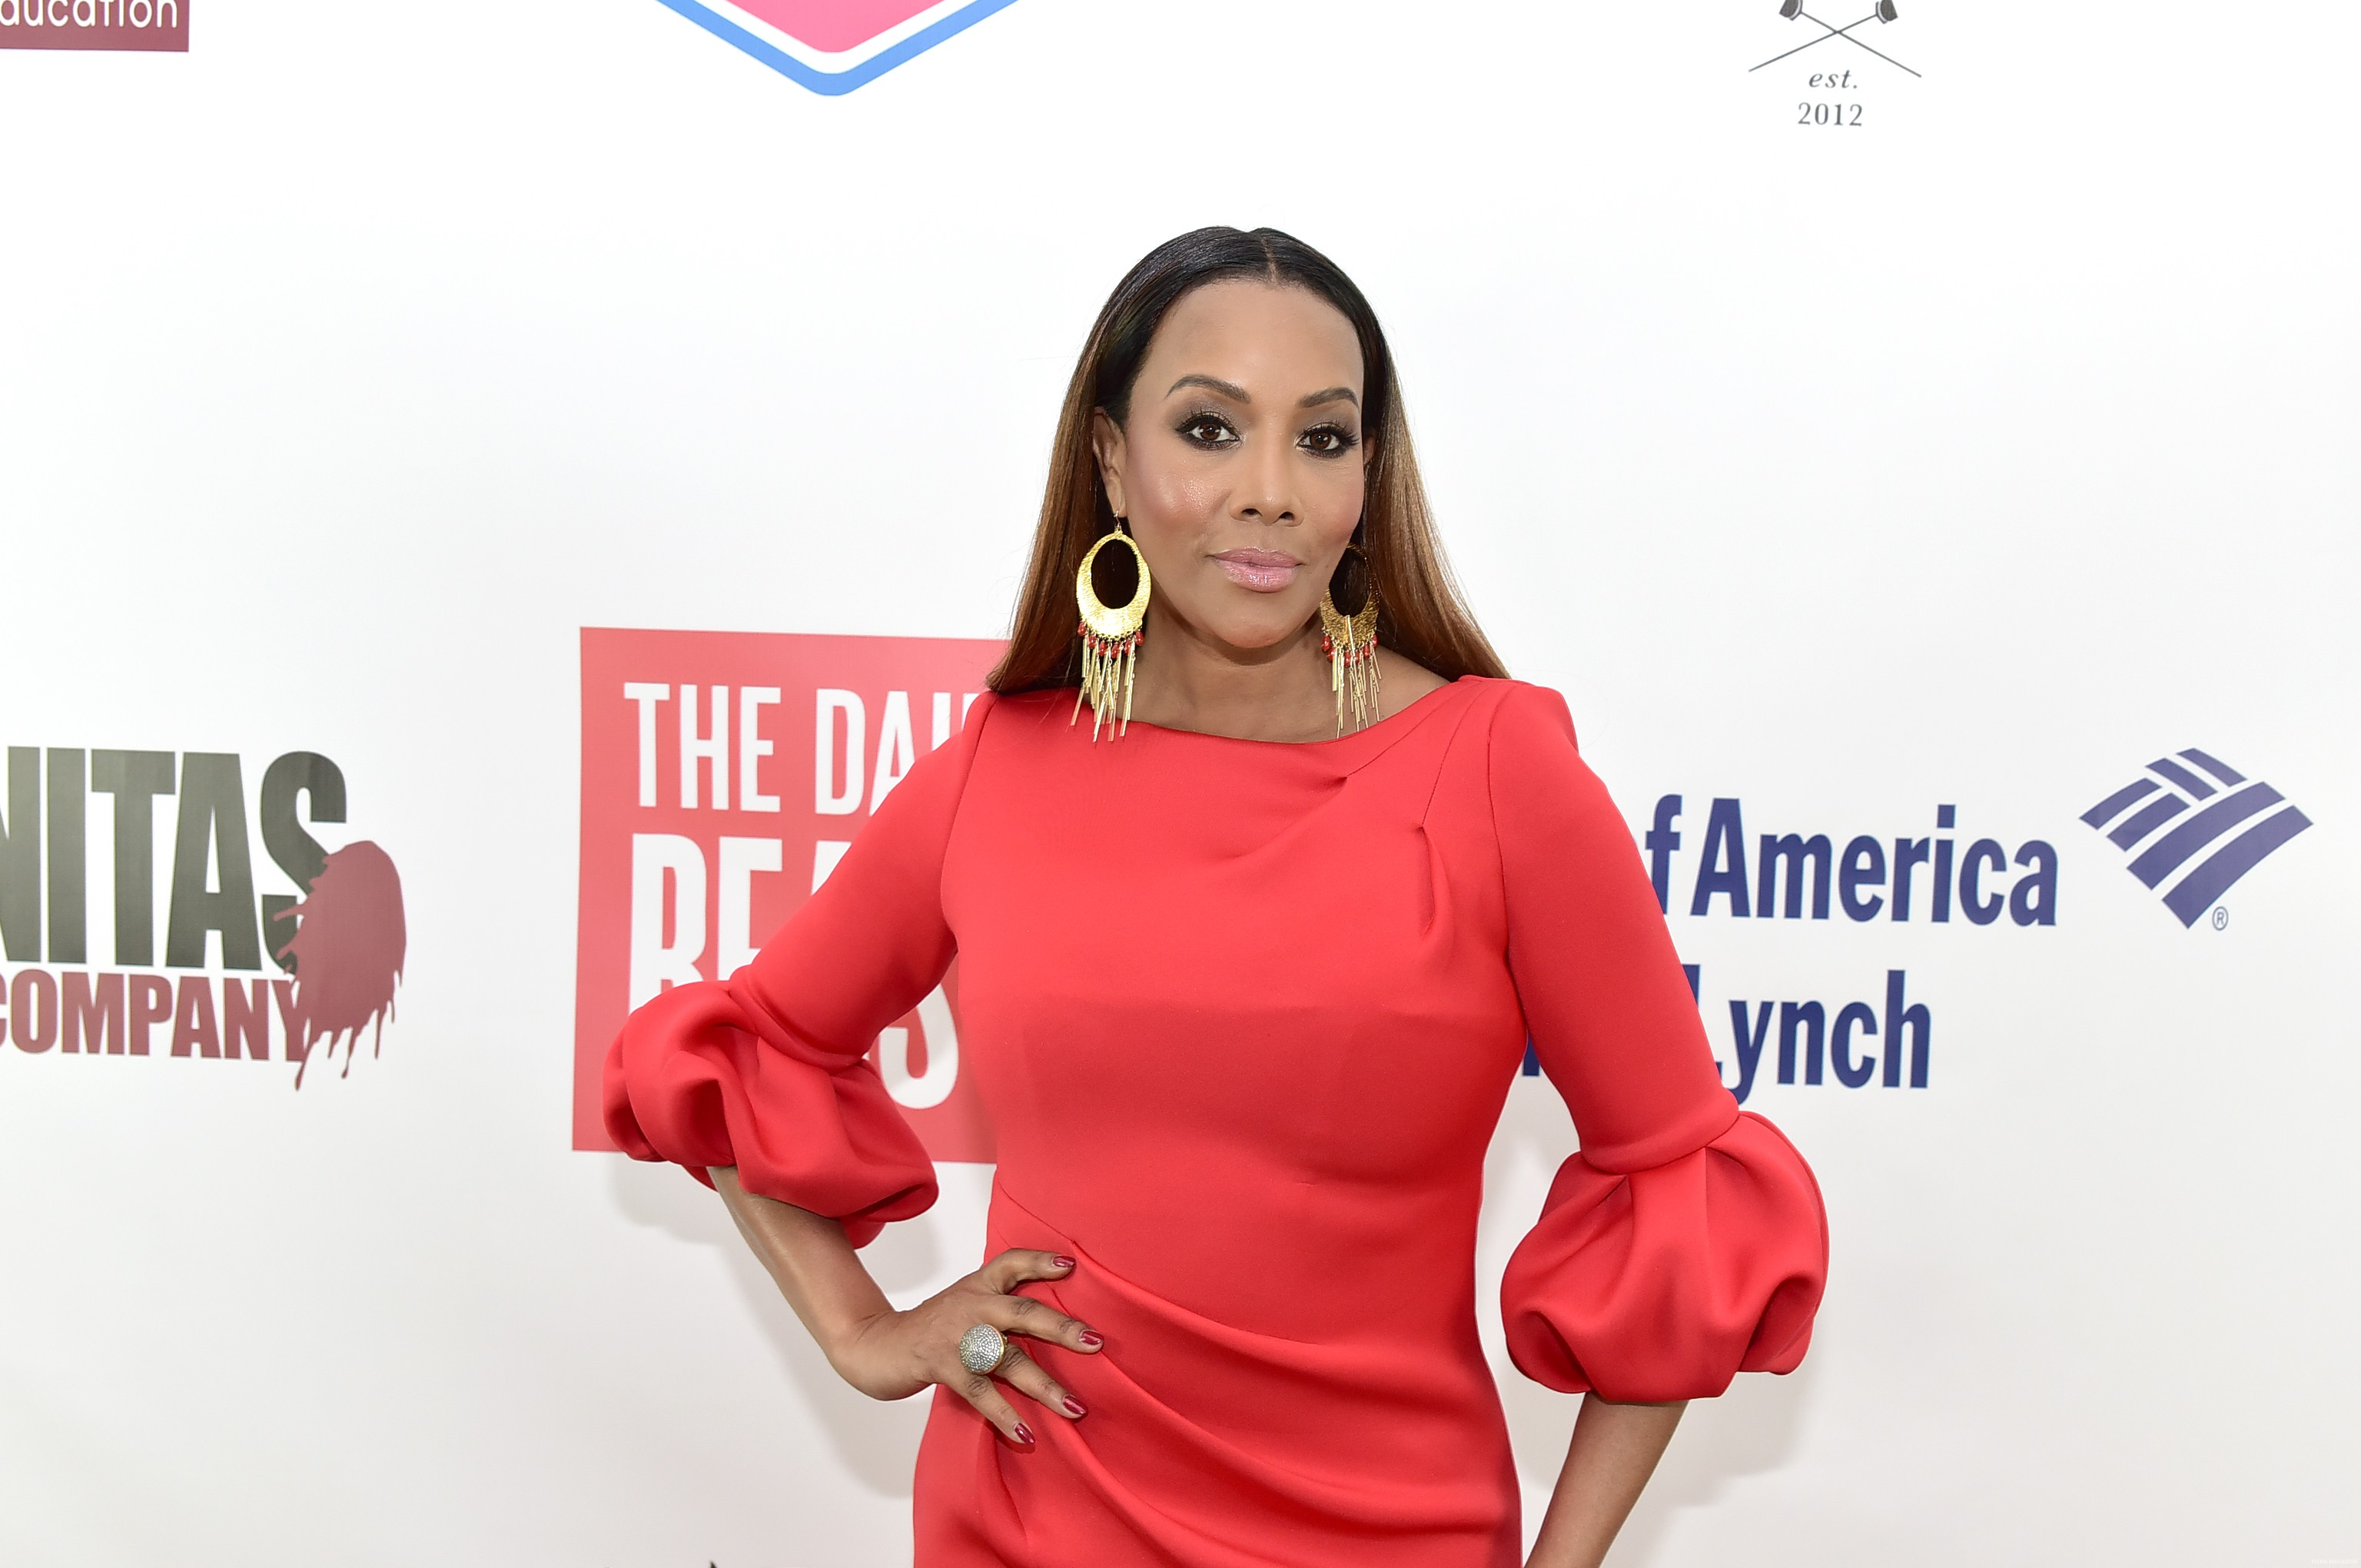 The Foundation For Letters Honors Vivica A. Fox at 5th Annual Benefit Gala